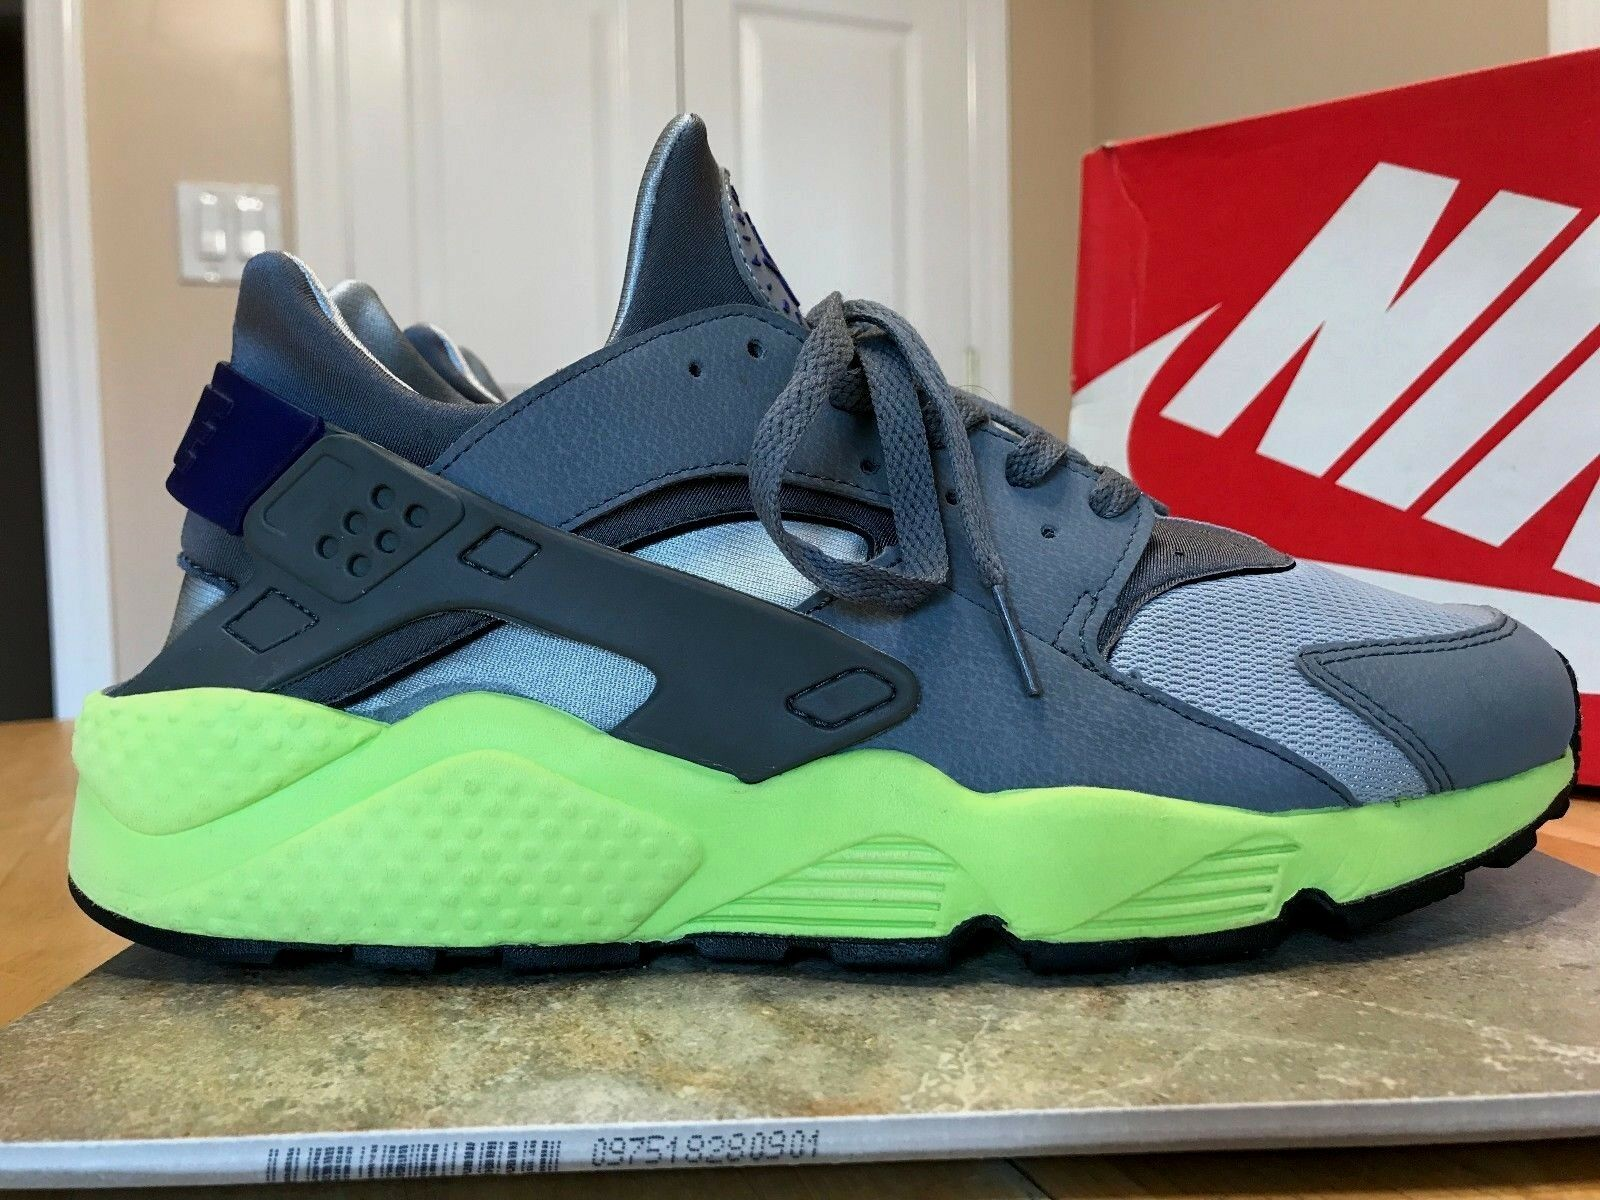 NIKE AIR HUARACHE SIZE 12 MEN'S SNEAKERS  2014 318429 004 WOLF GREY VOLT CONCORD